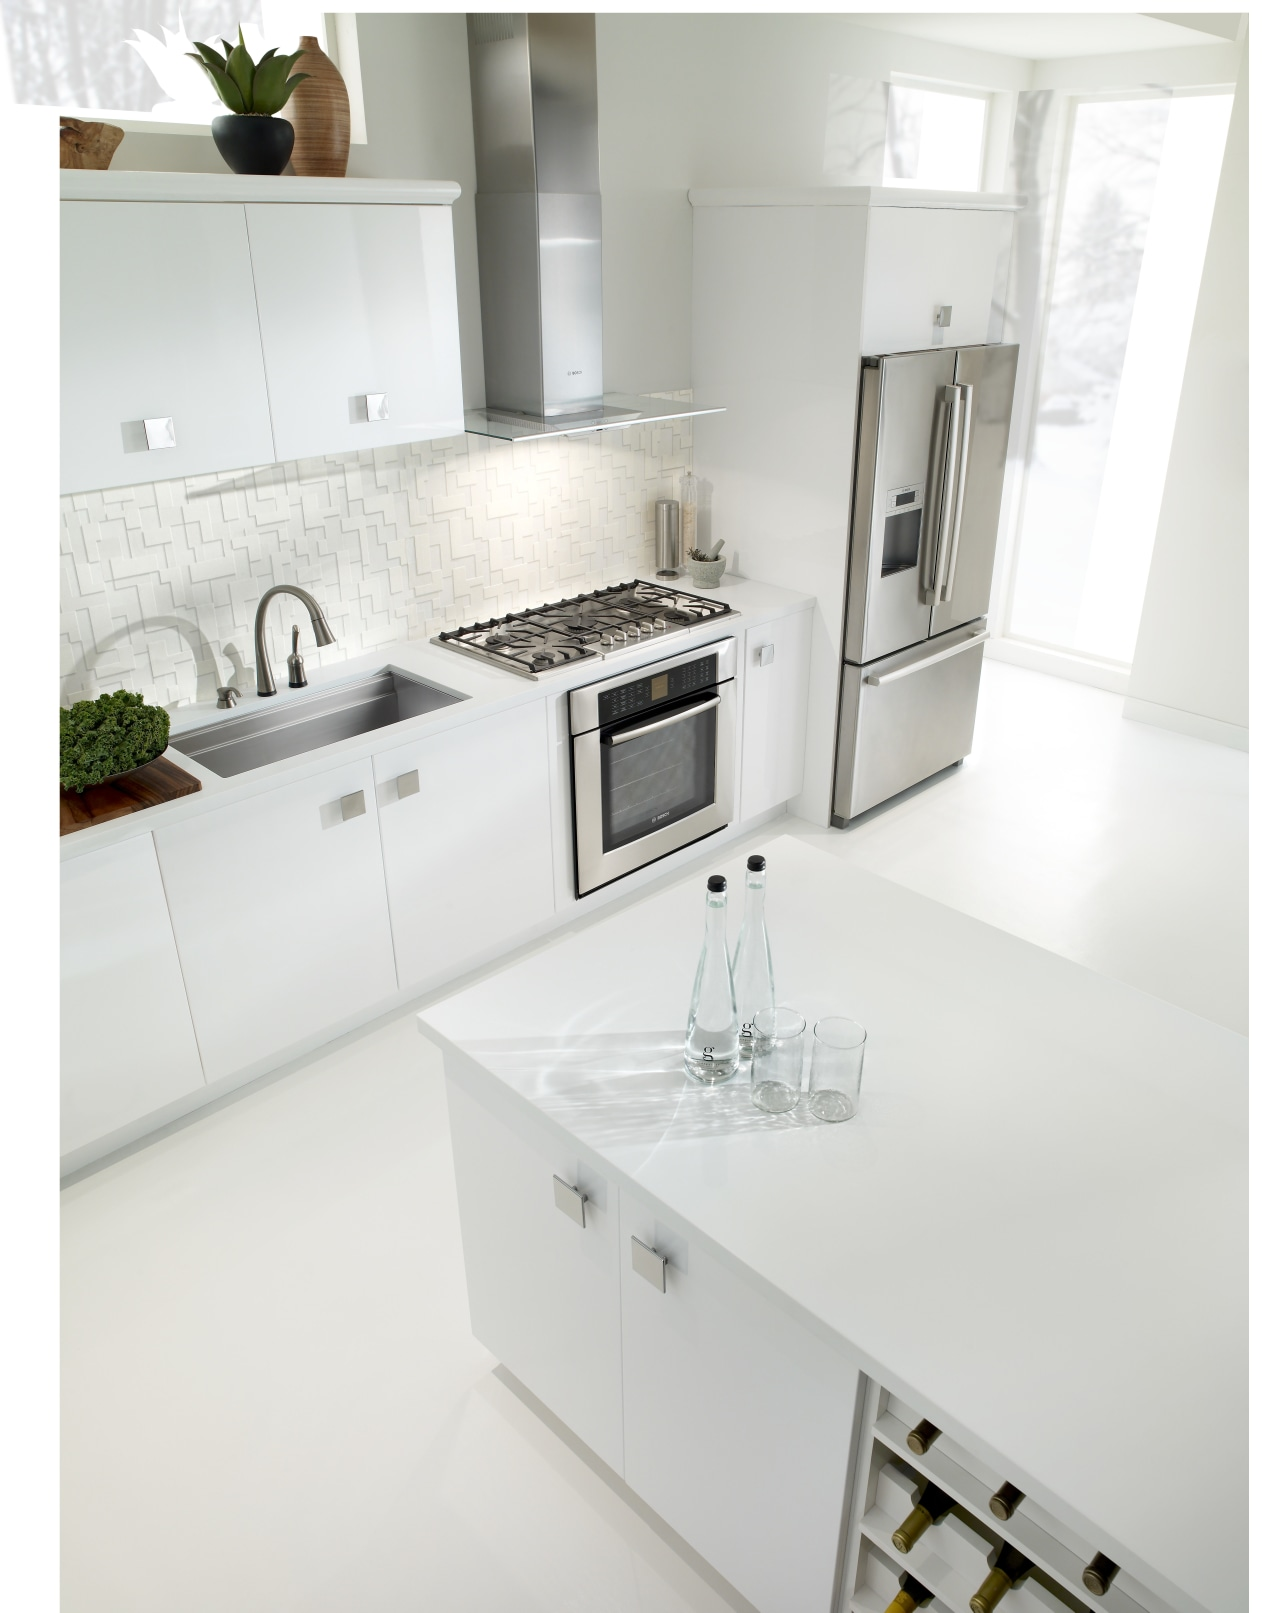 With both boards removed the sink is large countertop, floor, furniture, interior design, kitchen, product, product design, sink, tap, white